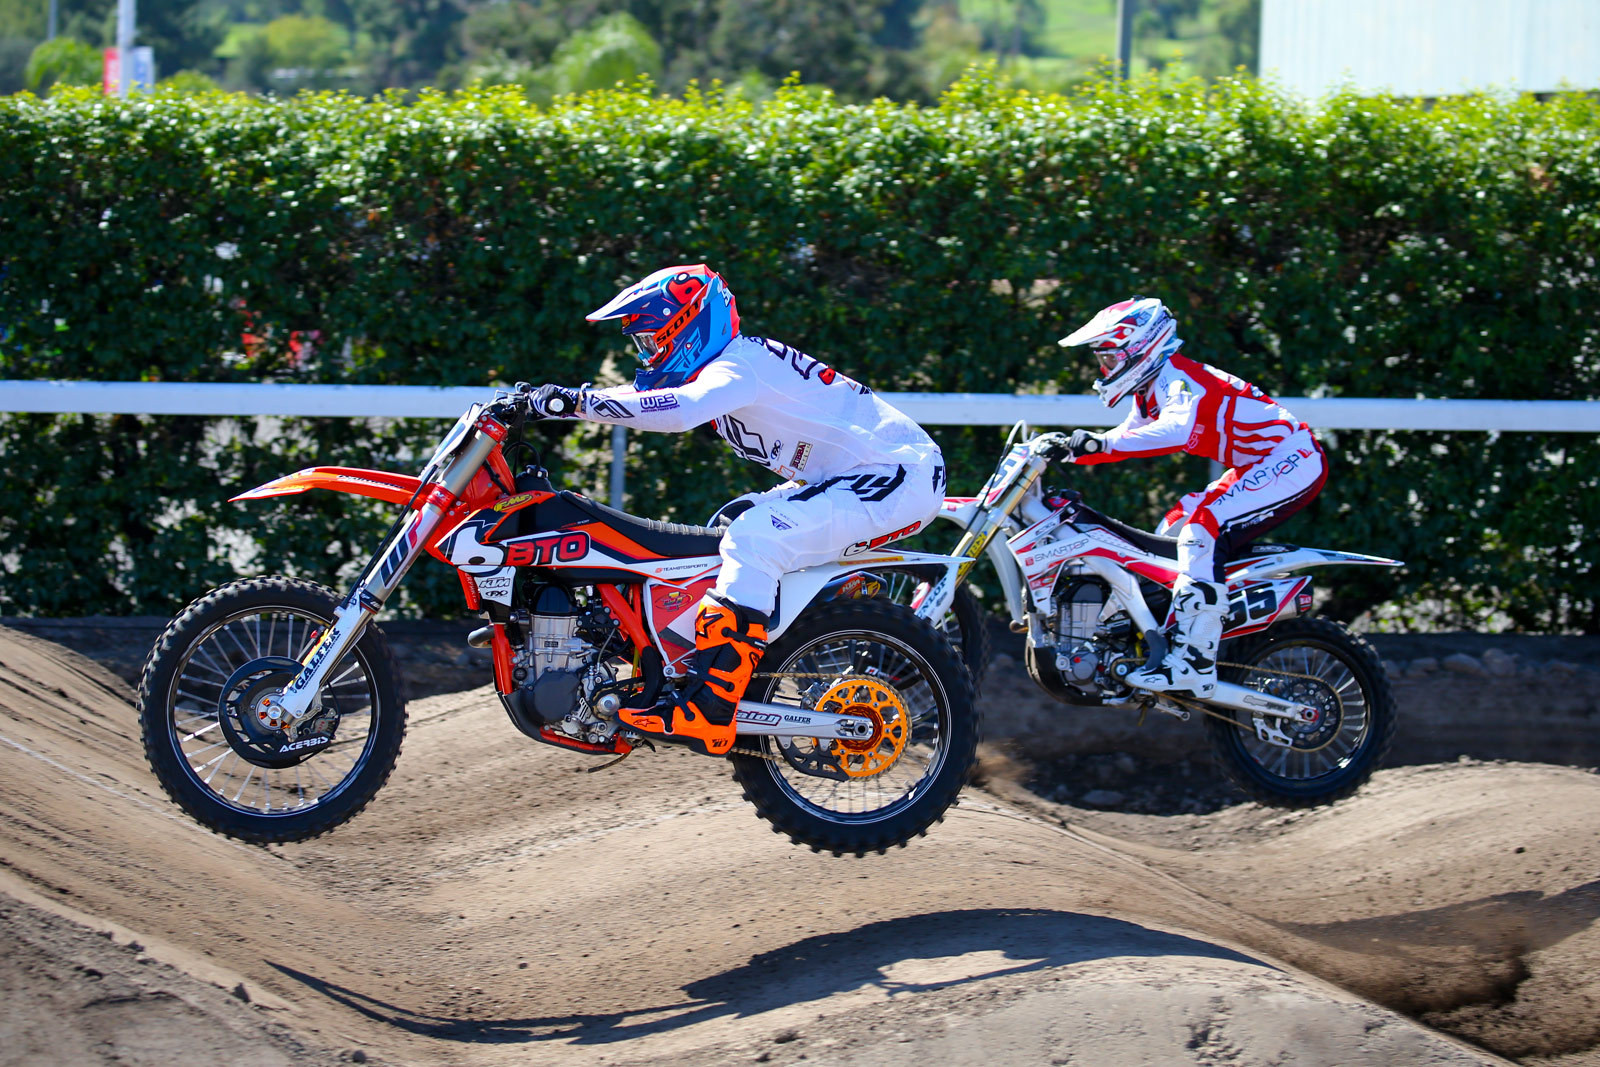 Andrew Short and Vince Friese - Photo Blast: Red Bull Straight Rhythm - Motocross Pictures - Vital MX